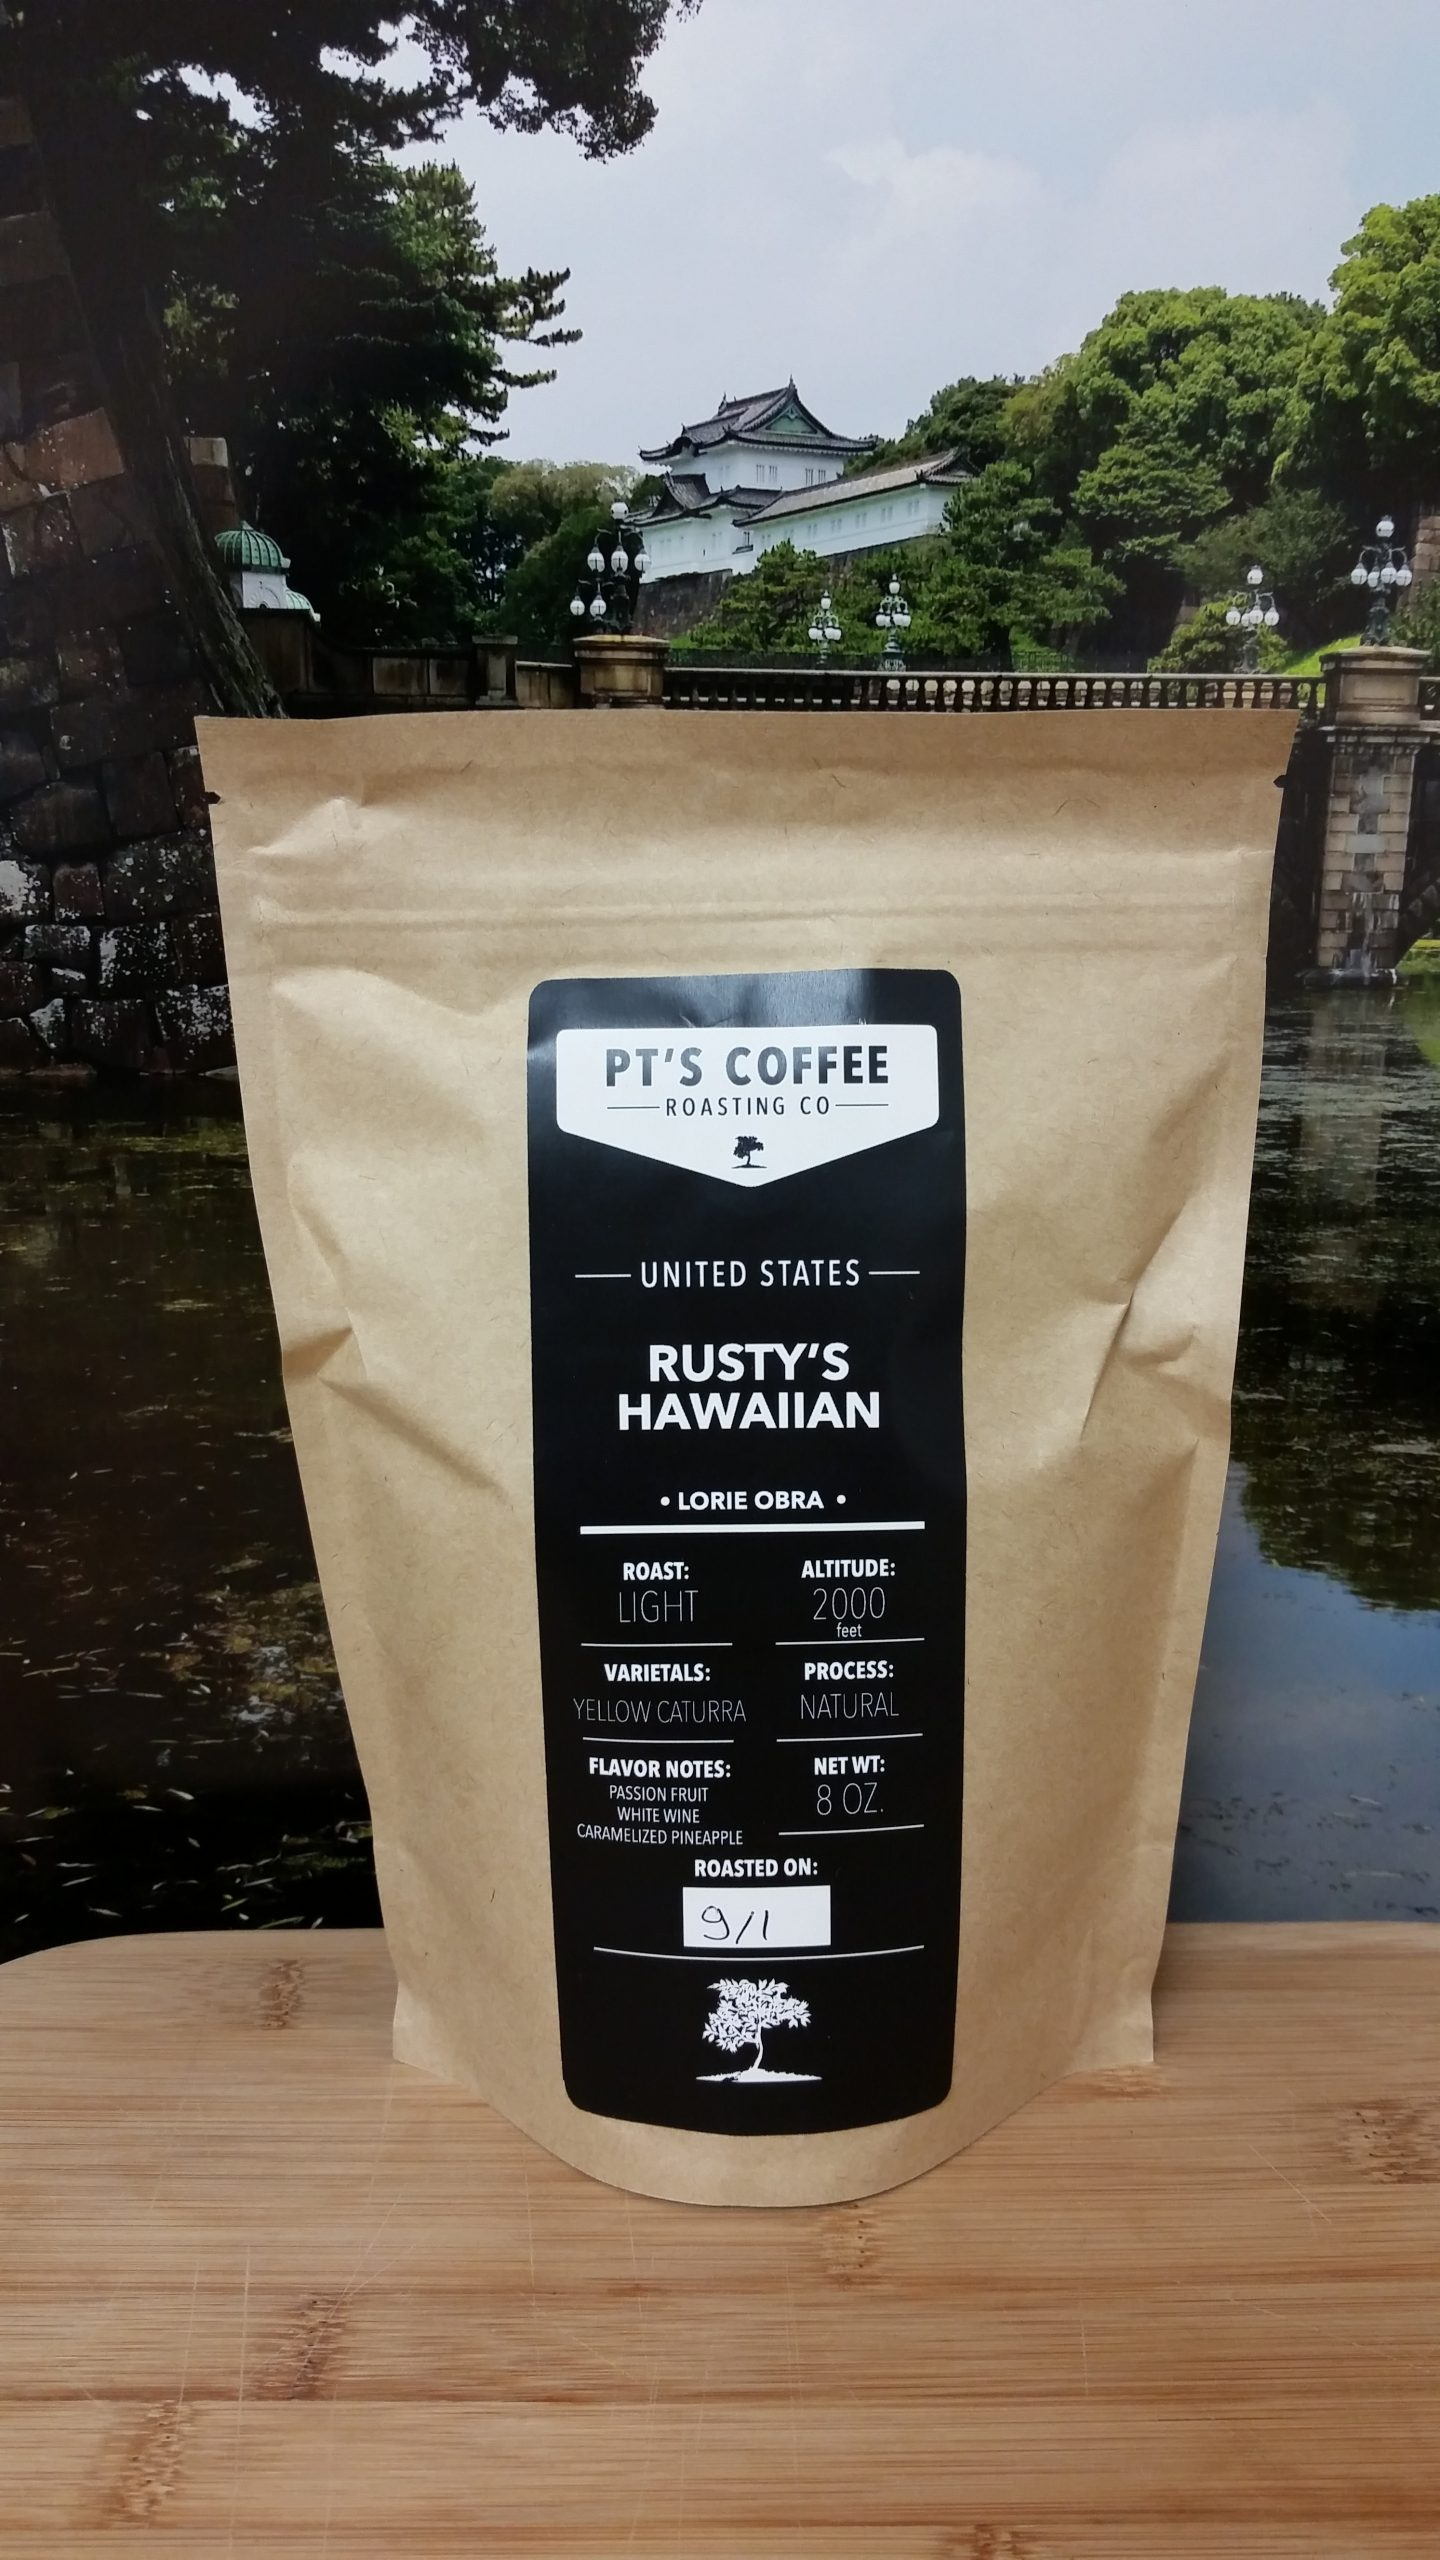 Rusty's Hawaiian Yellow Caturra Natural from PT's Coffee Roasting Co.